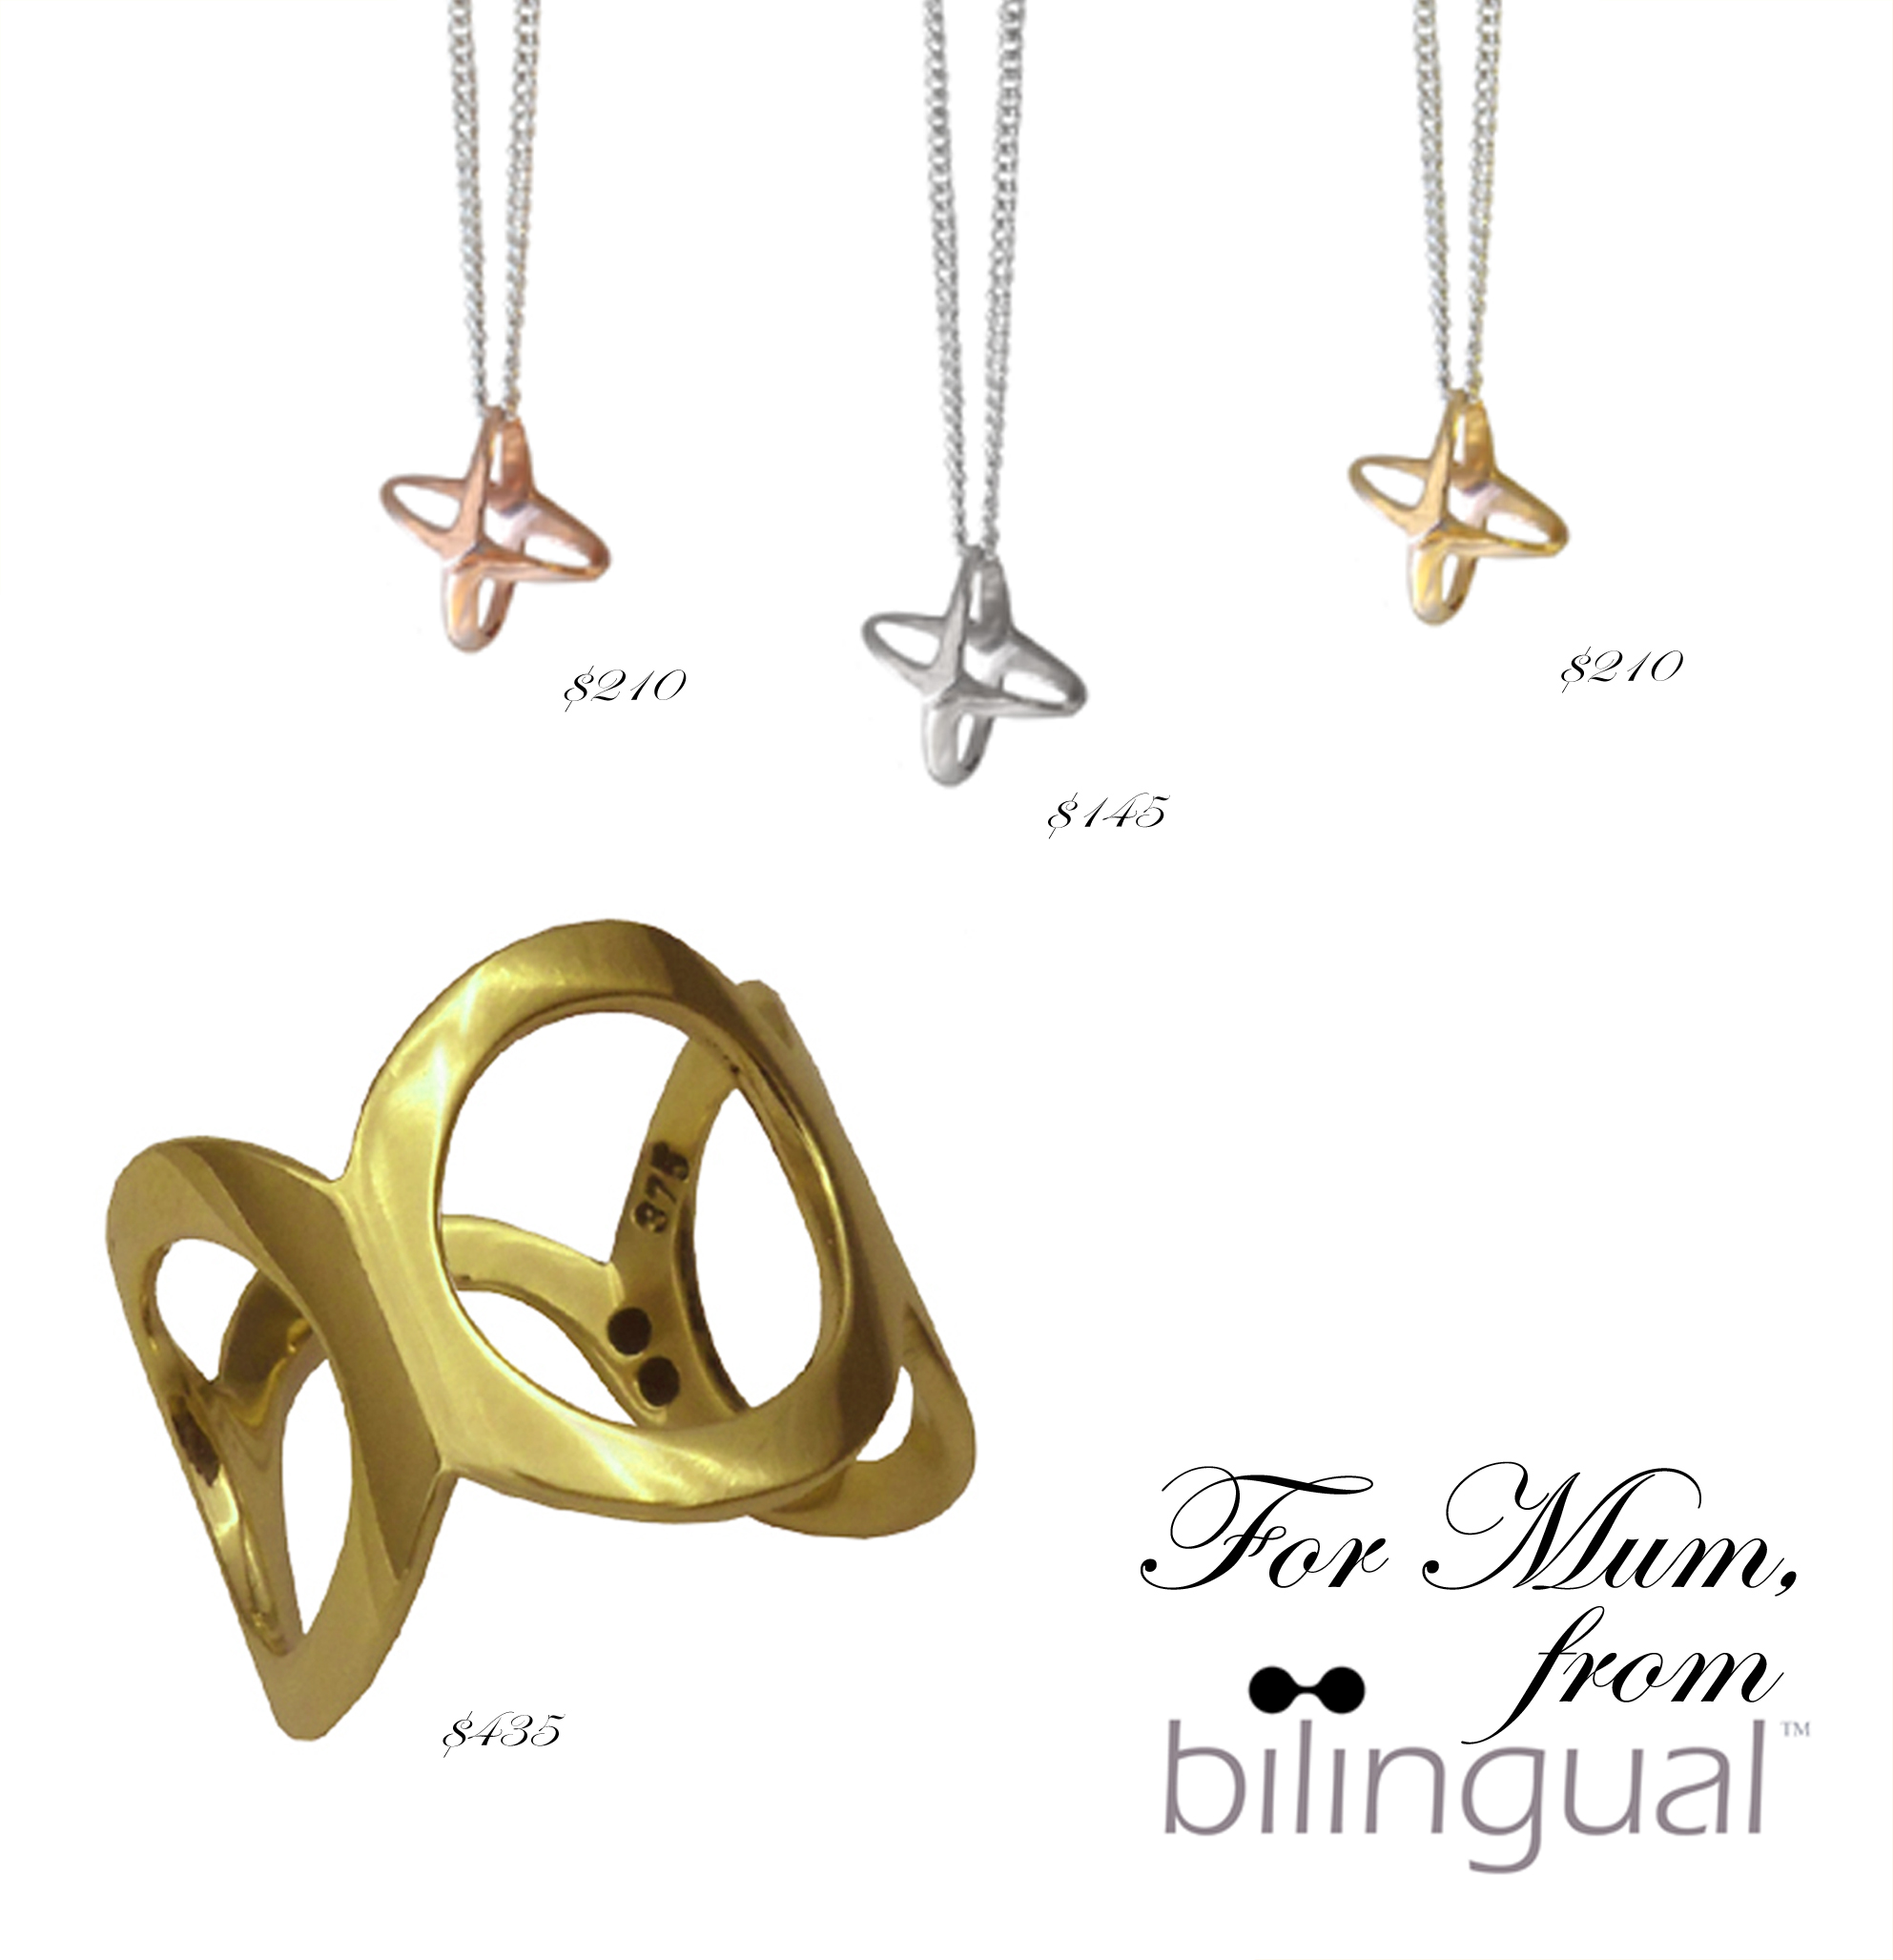 Mothers_Day_Mum_Gift_Jewellery_Unique_Timeless_Bilingual_Design_gold_rose